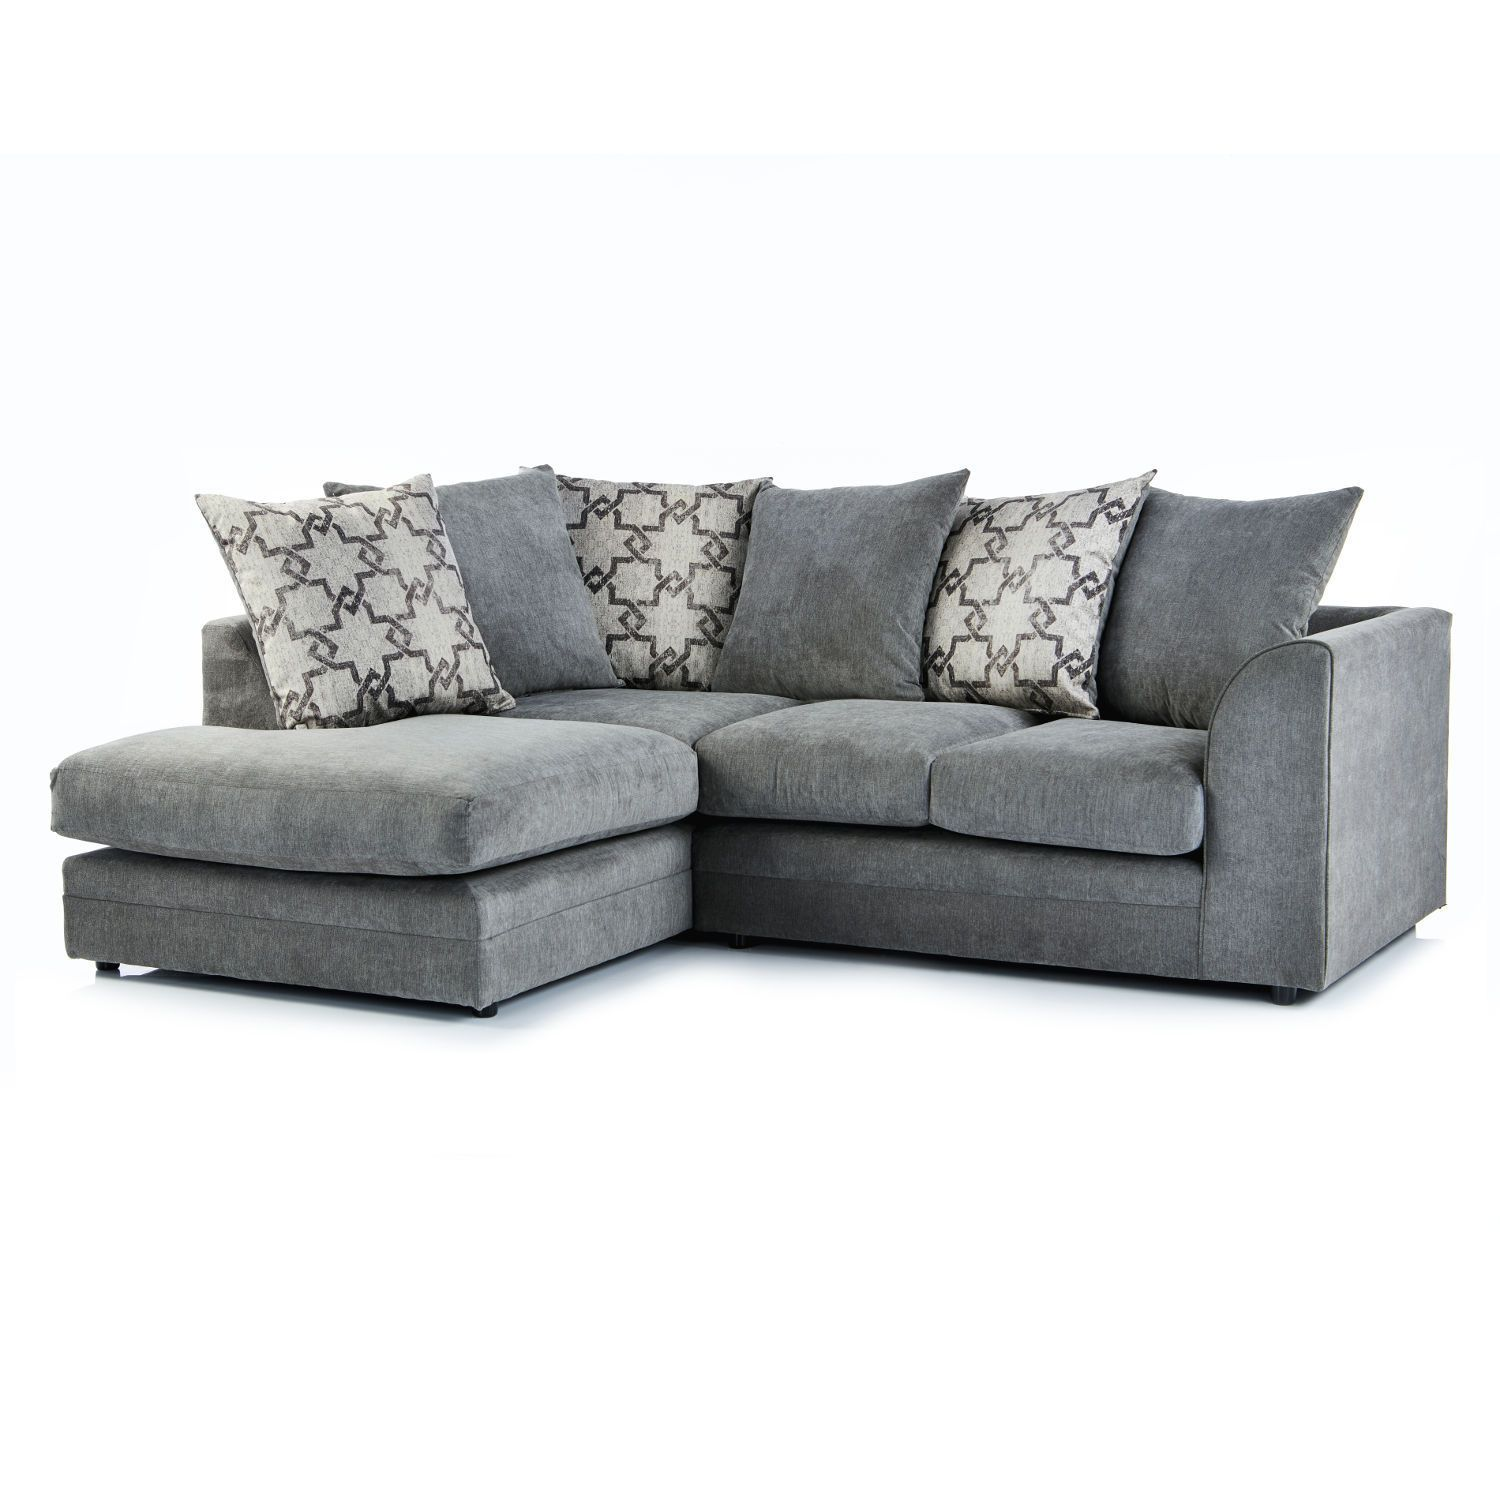 Awe Inspiring Promo Code 01Fe1 Ea172 Dunelm Sofas Corner Dailytribune Chair Design For Home Dailytribuneorg